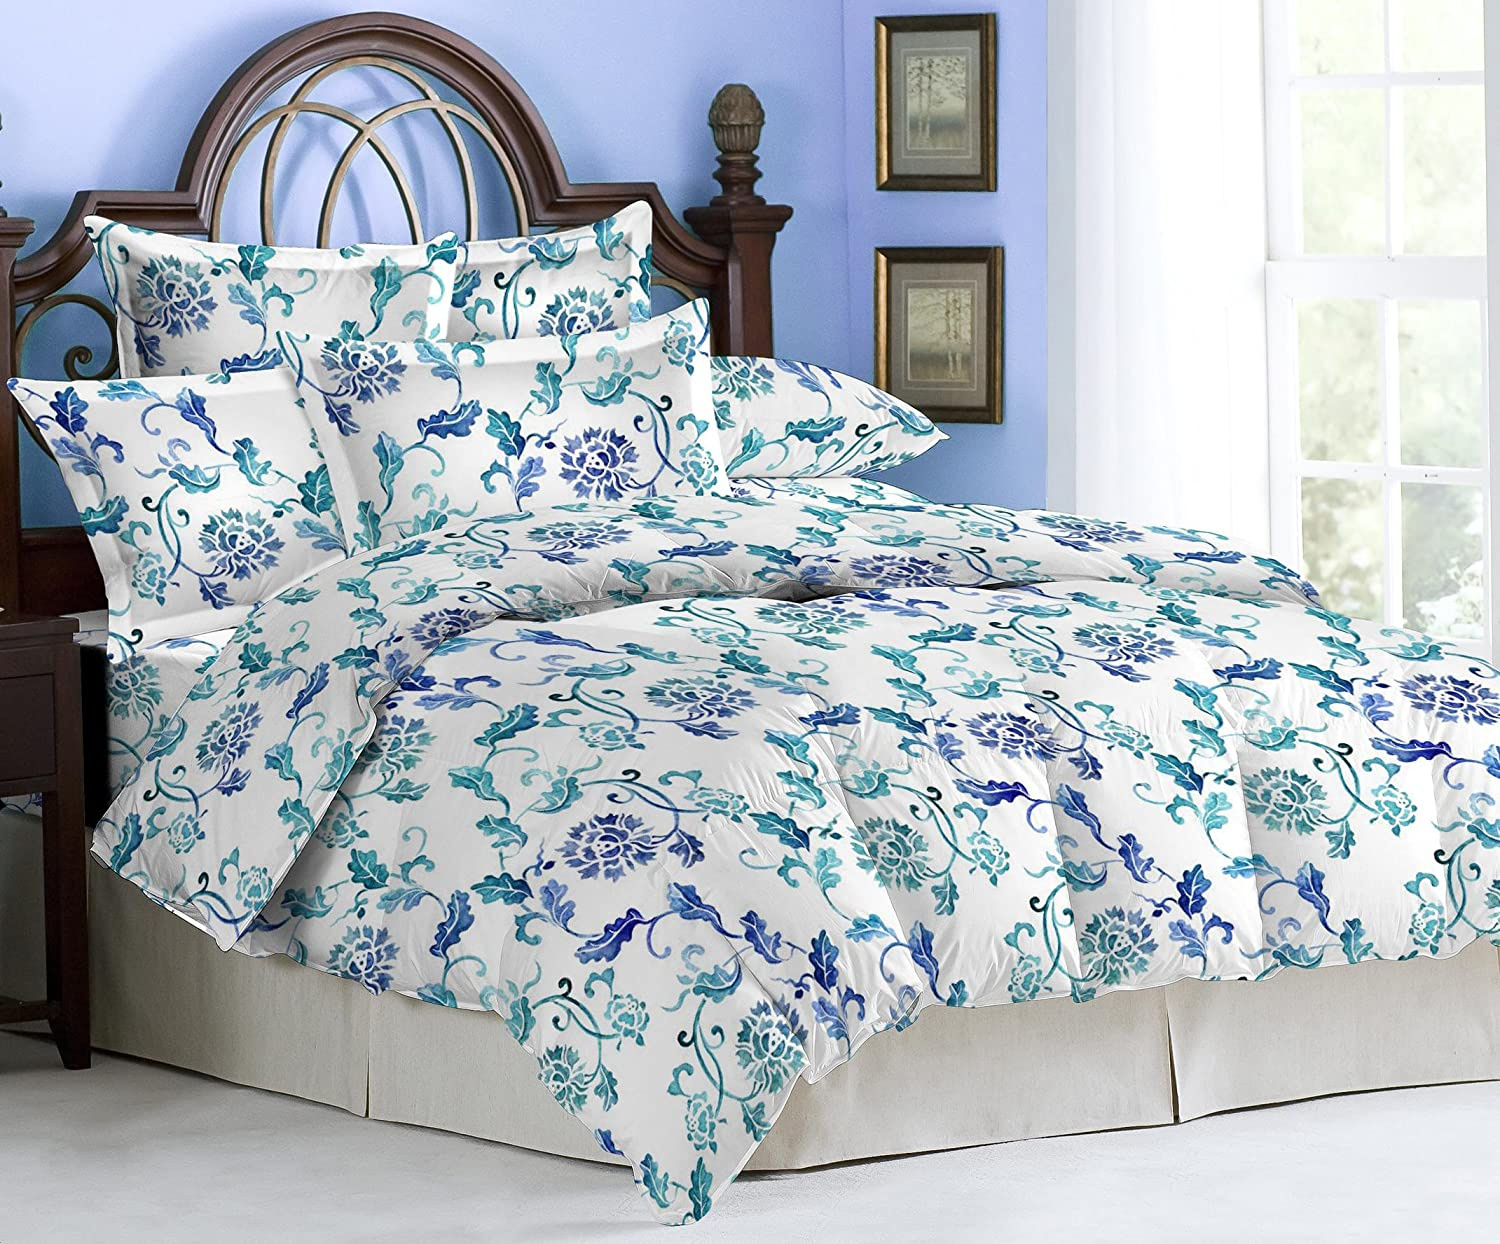 Merveilleux Buy Bombay Dyeing Eternia Double Bedsheet With 2 Pillow Covers   Blue  Online At Low Prices In India   Amazon.in